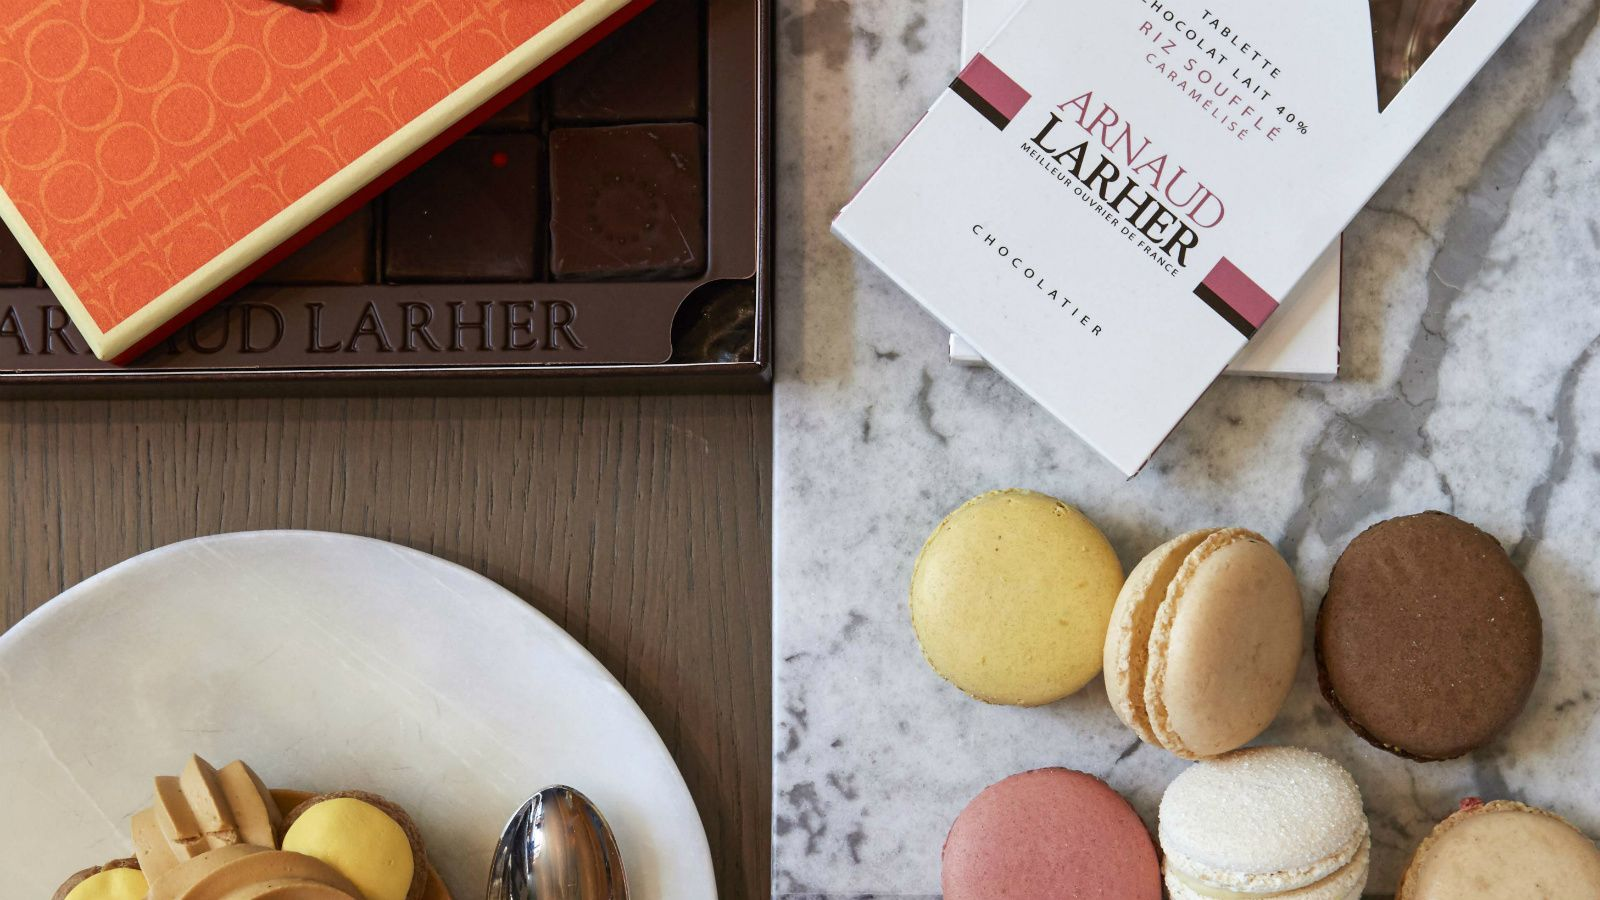 GB-Corner-Gifts-Flavors-concept-store_macarons-chocolates-Arnaud-Larher_Hotel-Grande-Bretagne-Athens-Greece